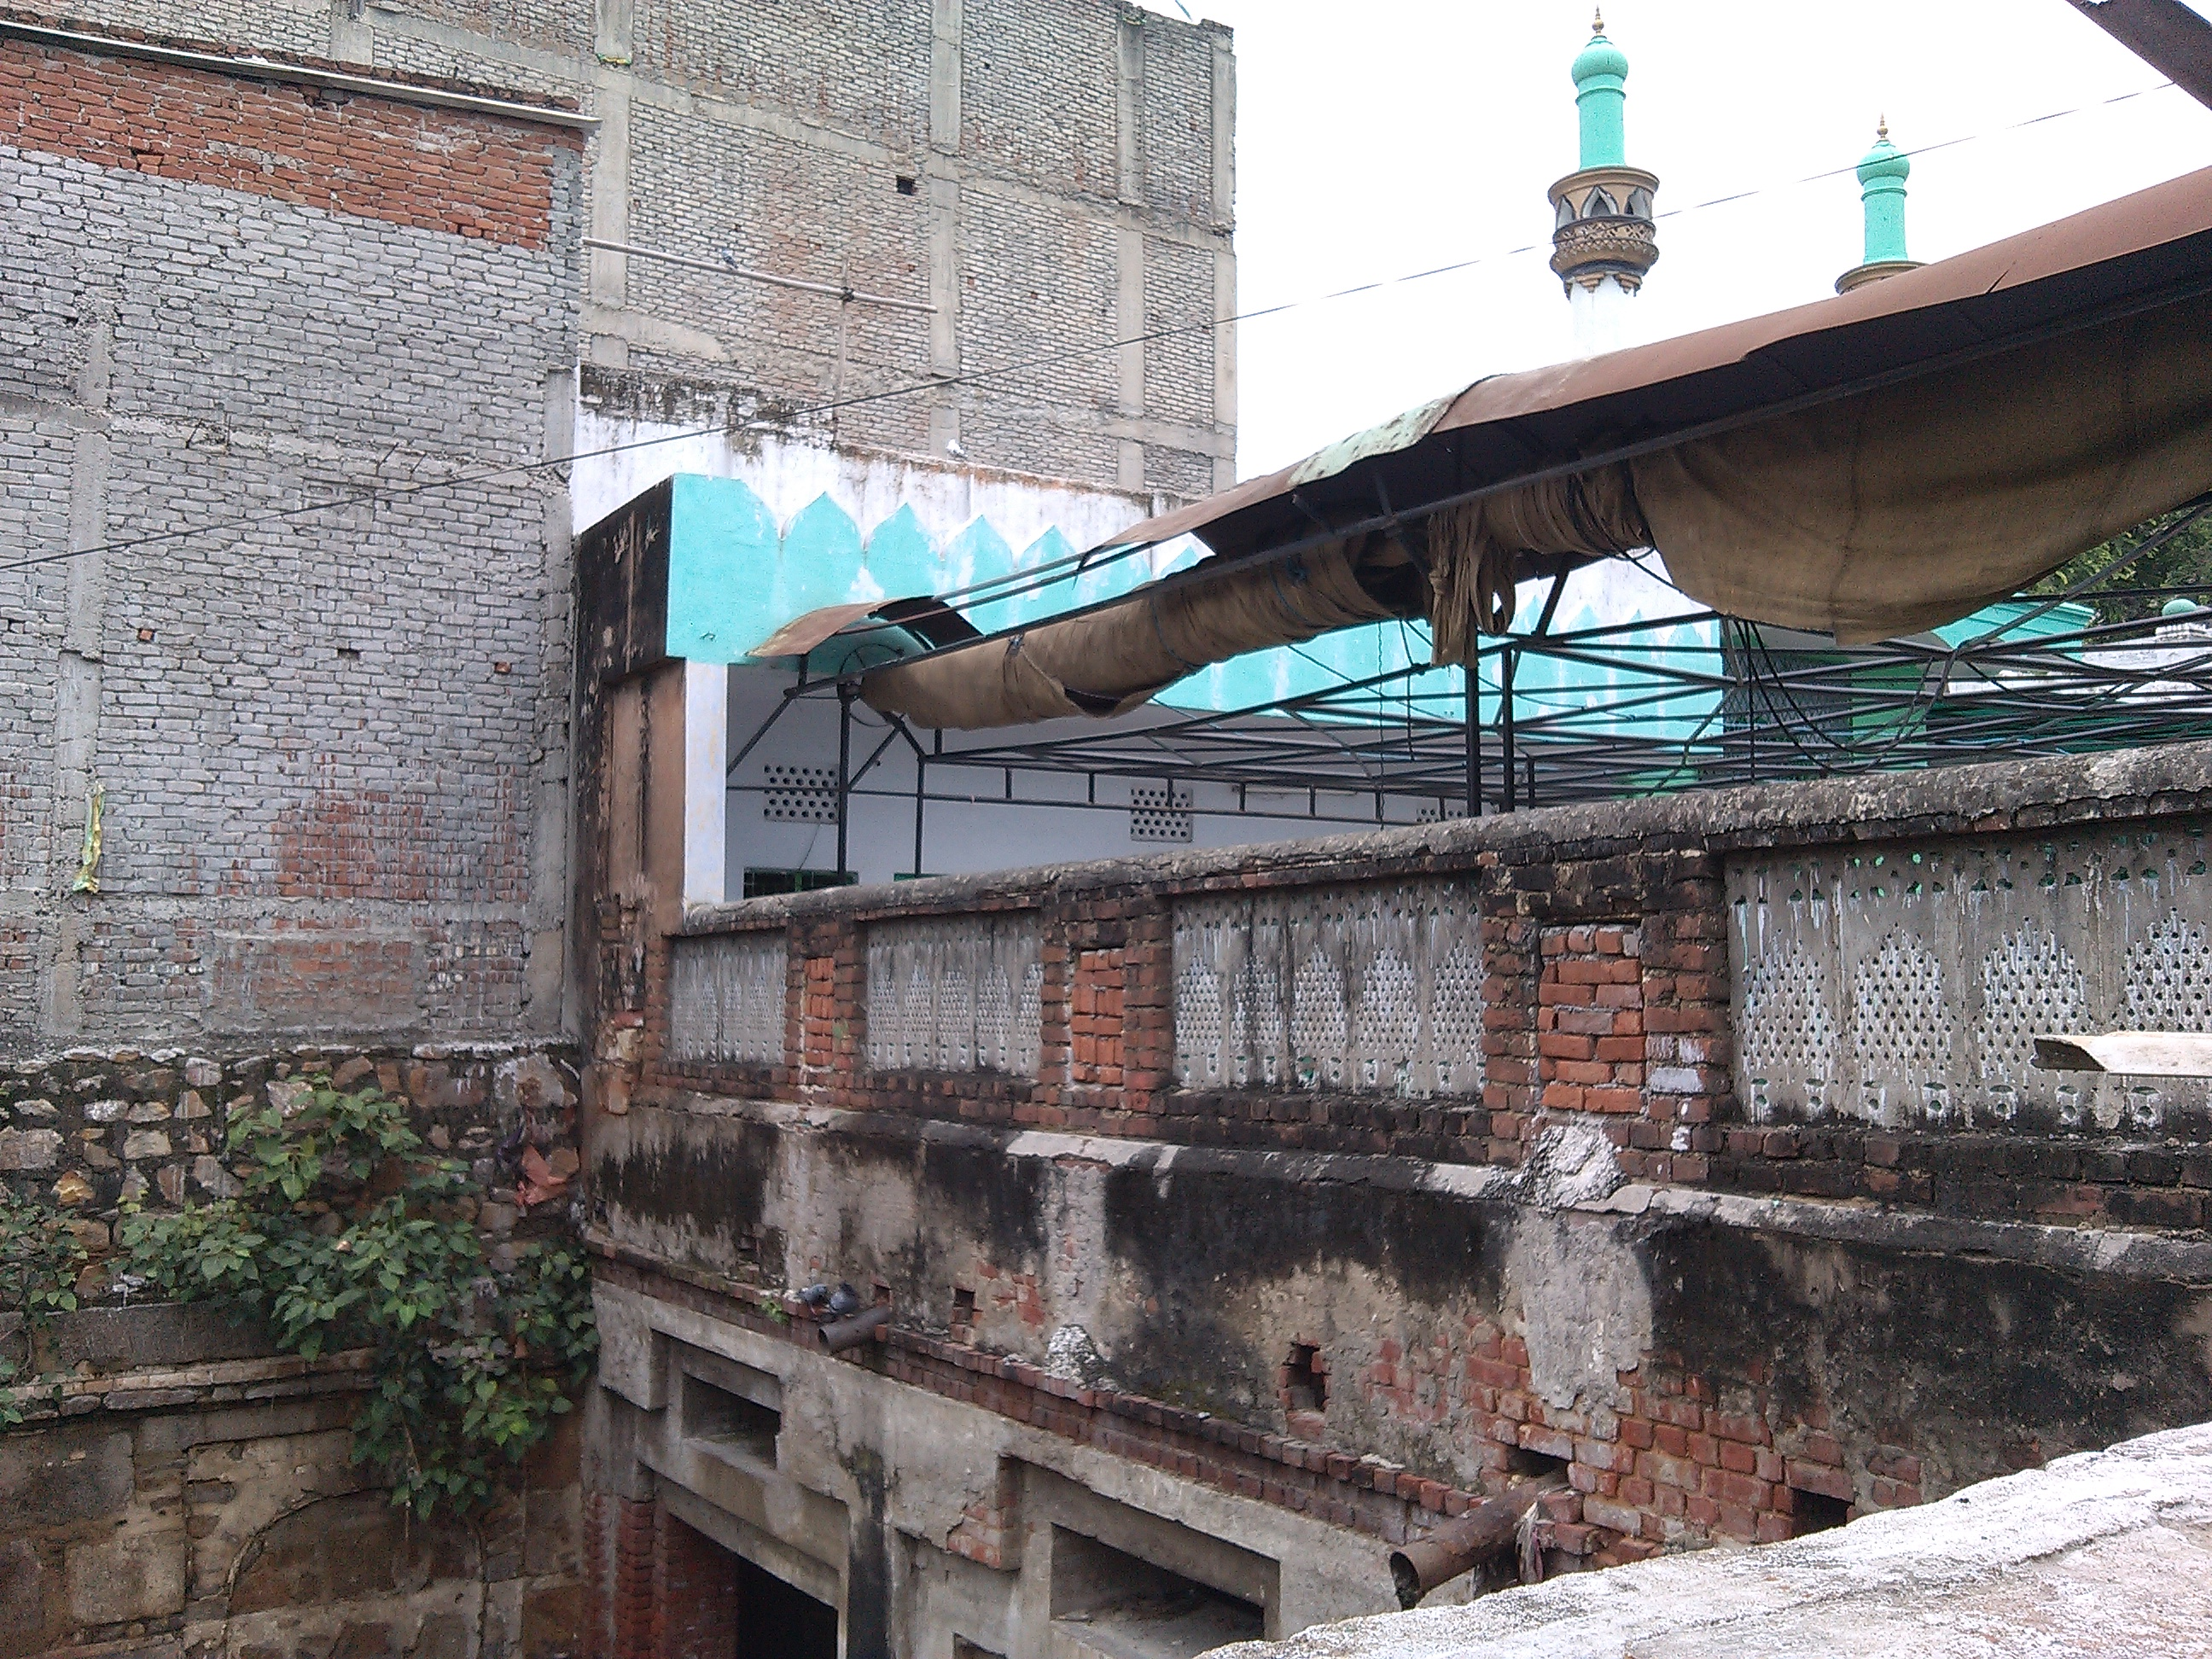 The Baoli, now defunct